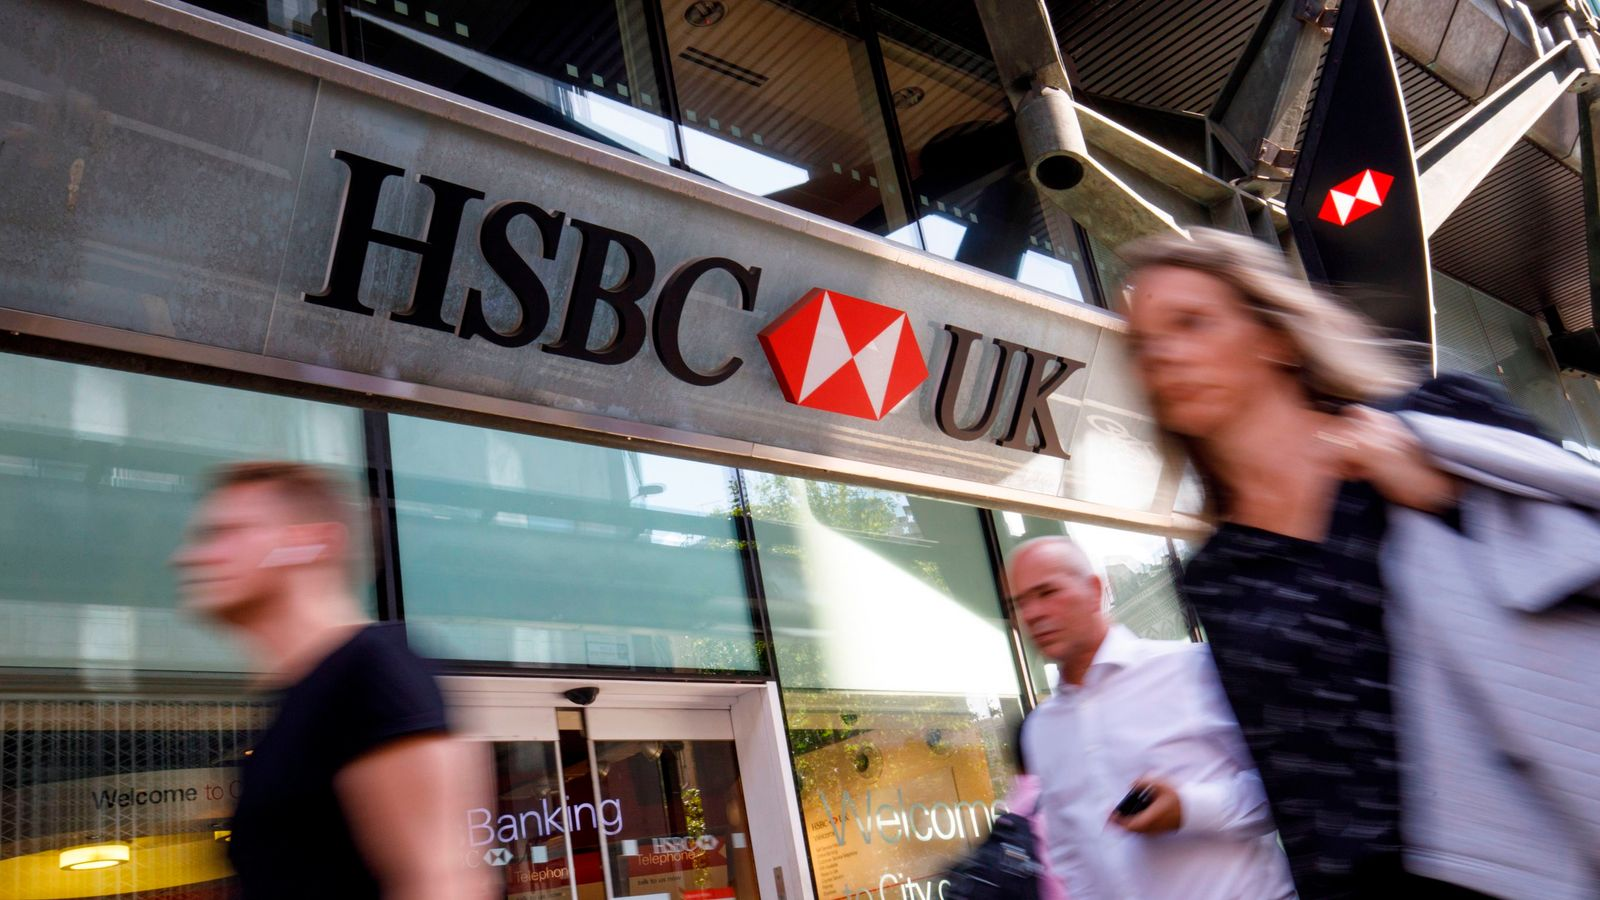 HSBC to cut 35,000 jobs and shed assets in major overhaul - Sky News